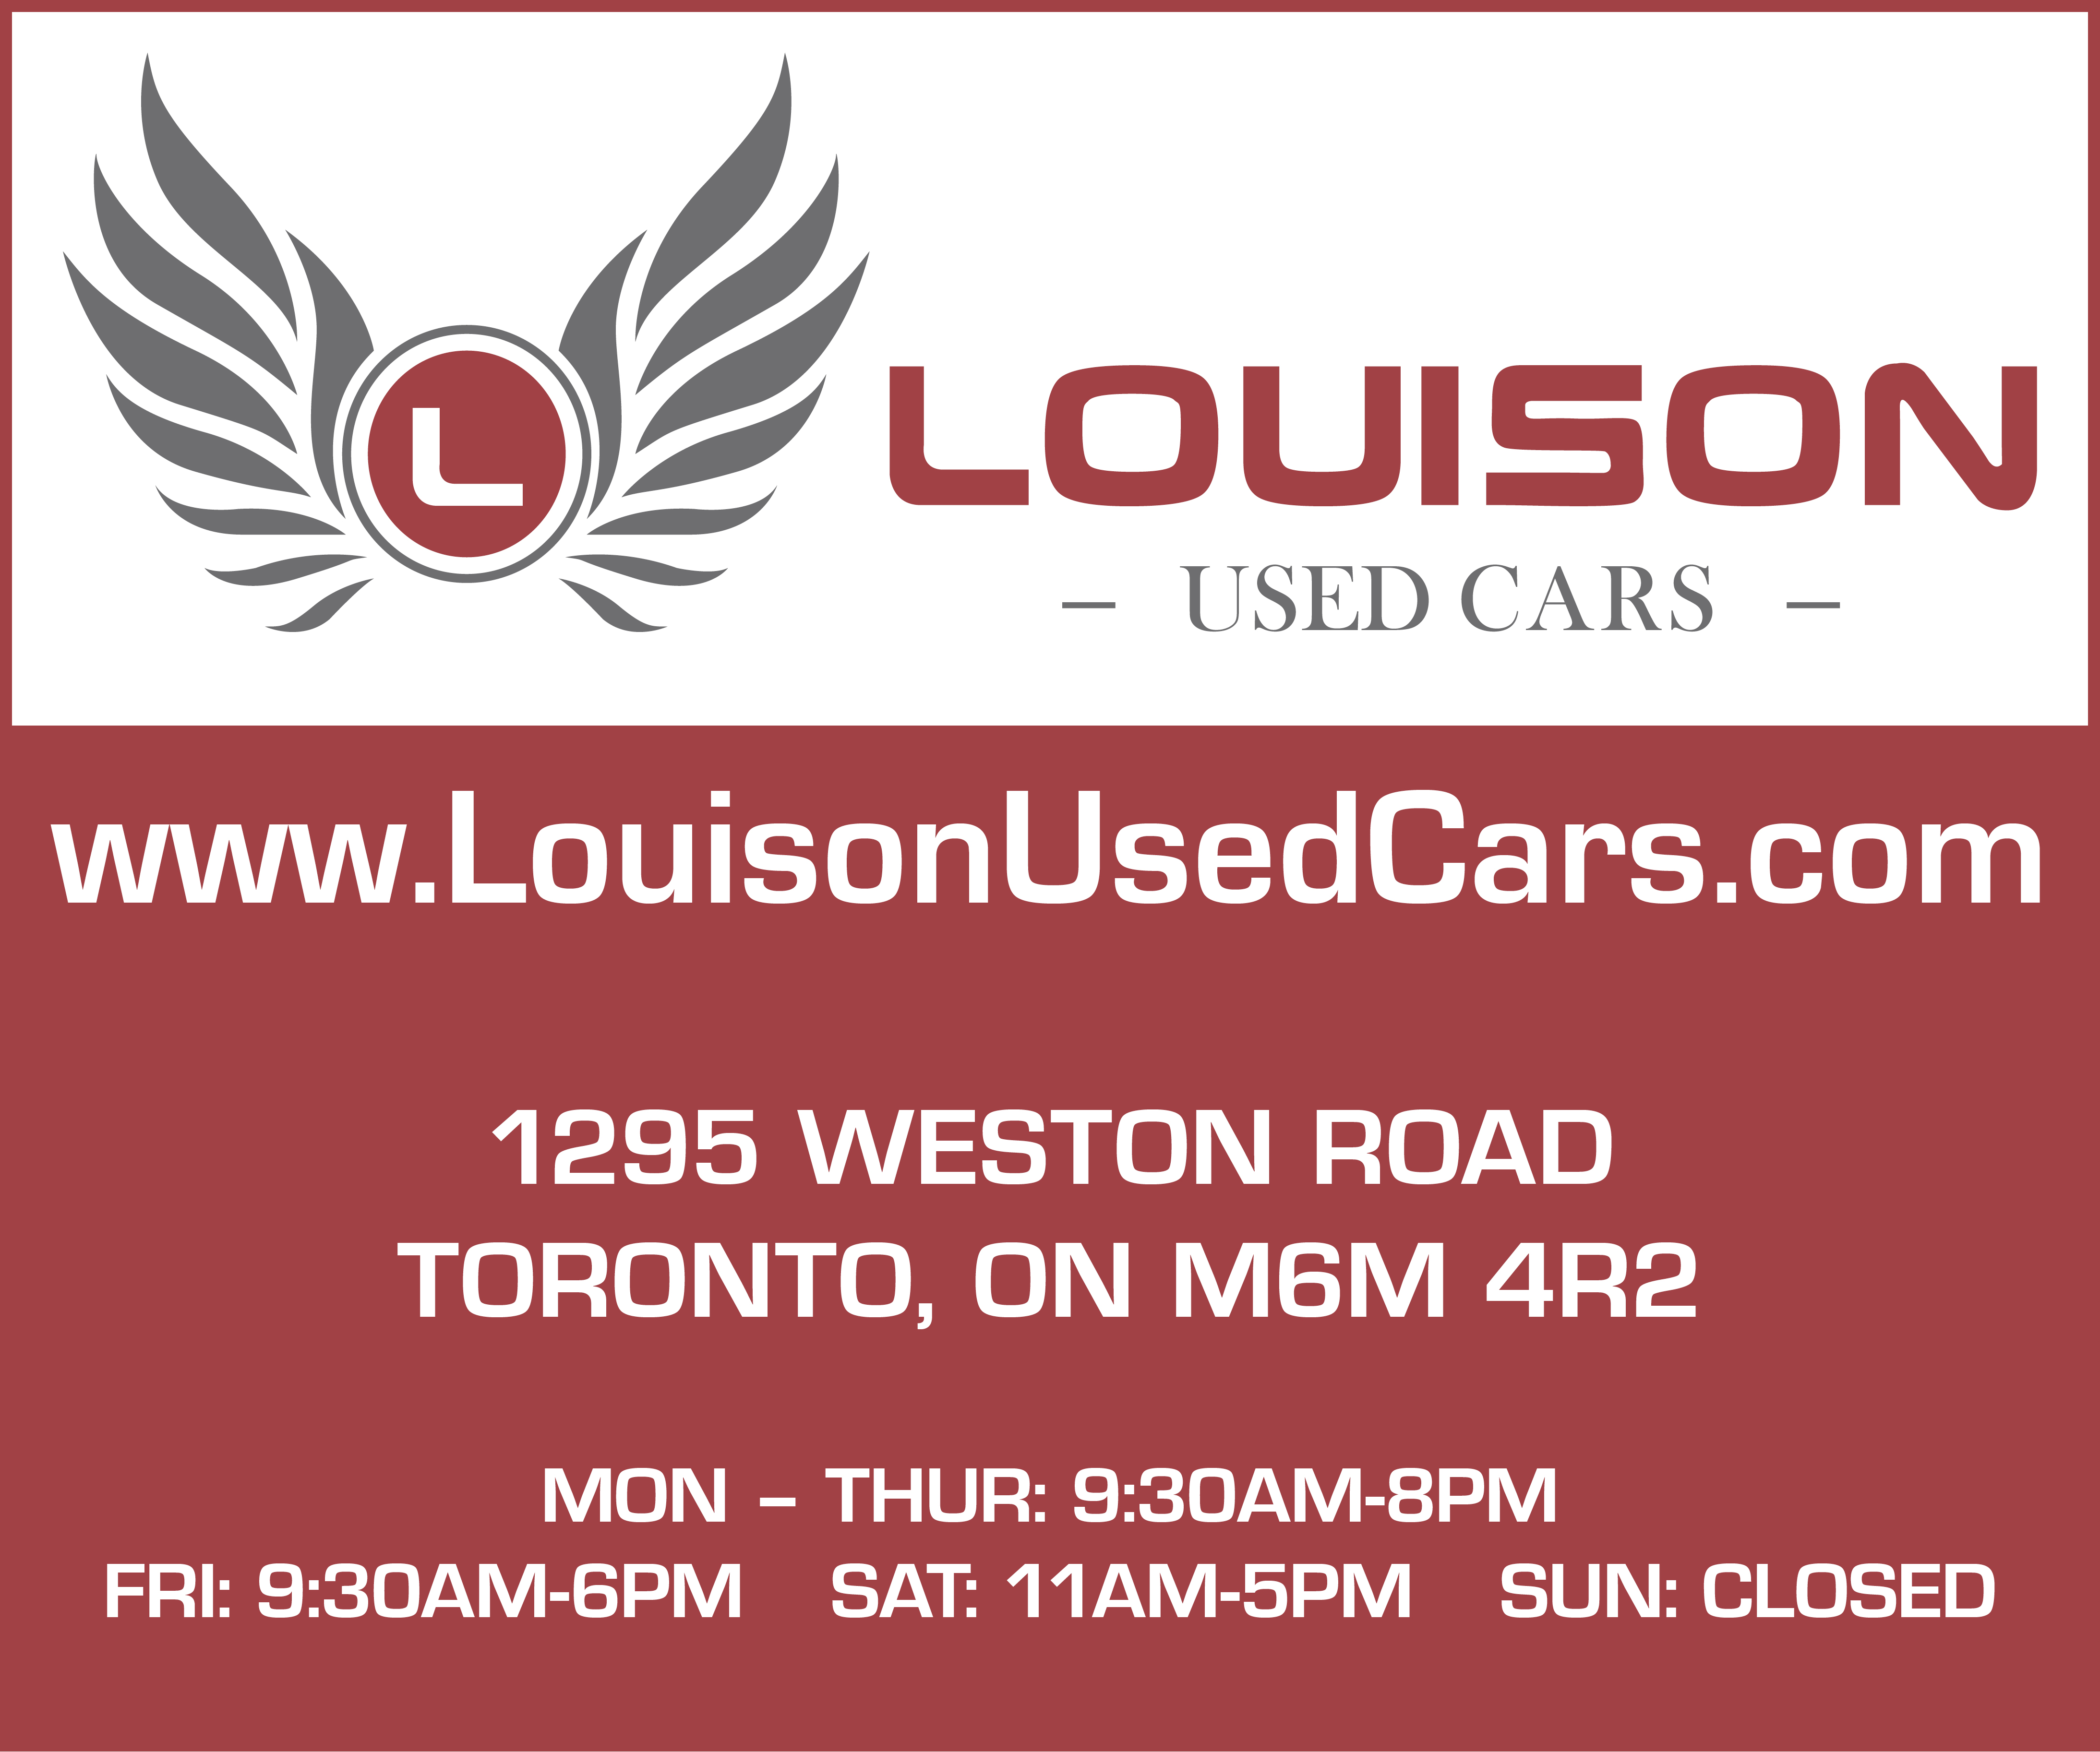 More from Louison Used Cars